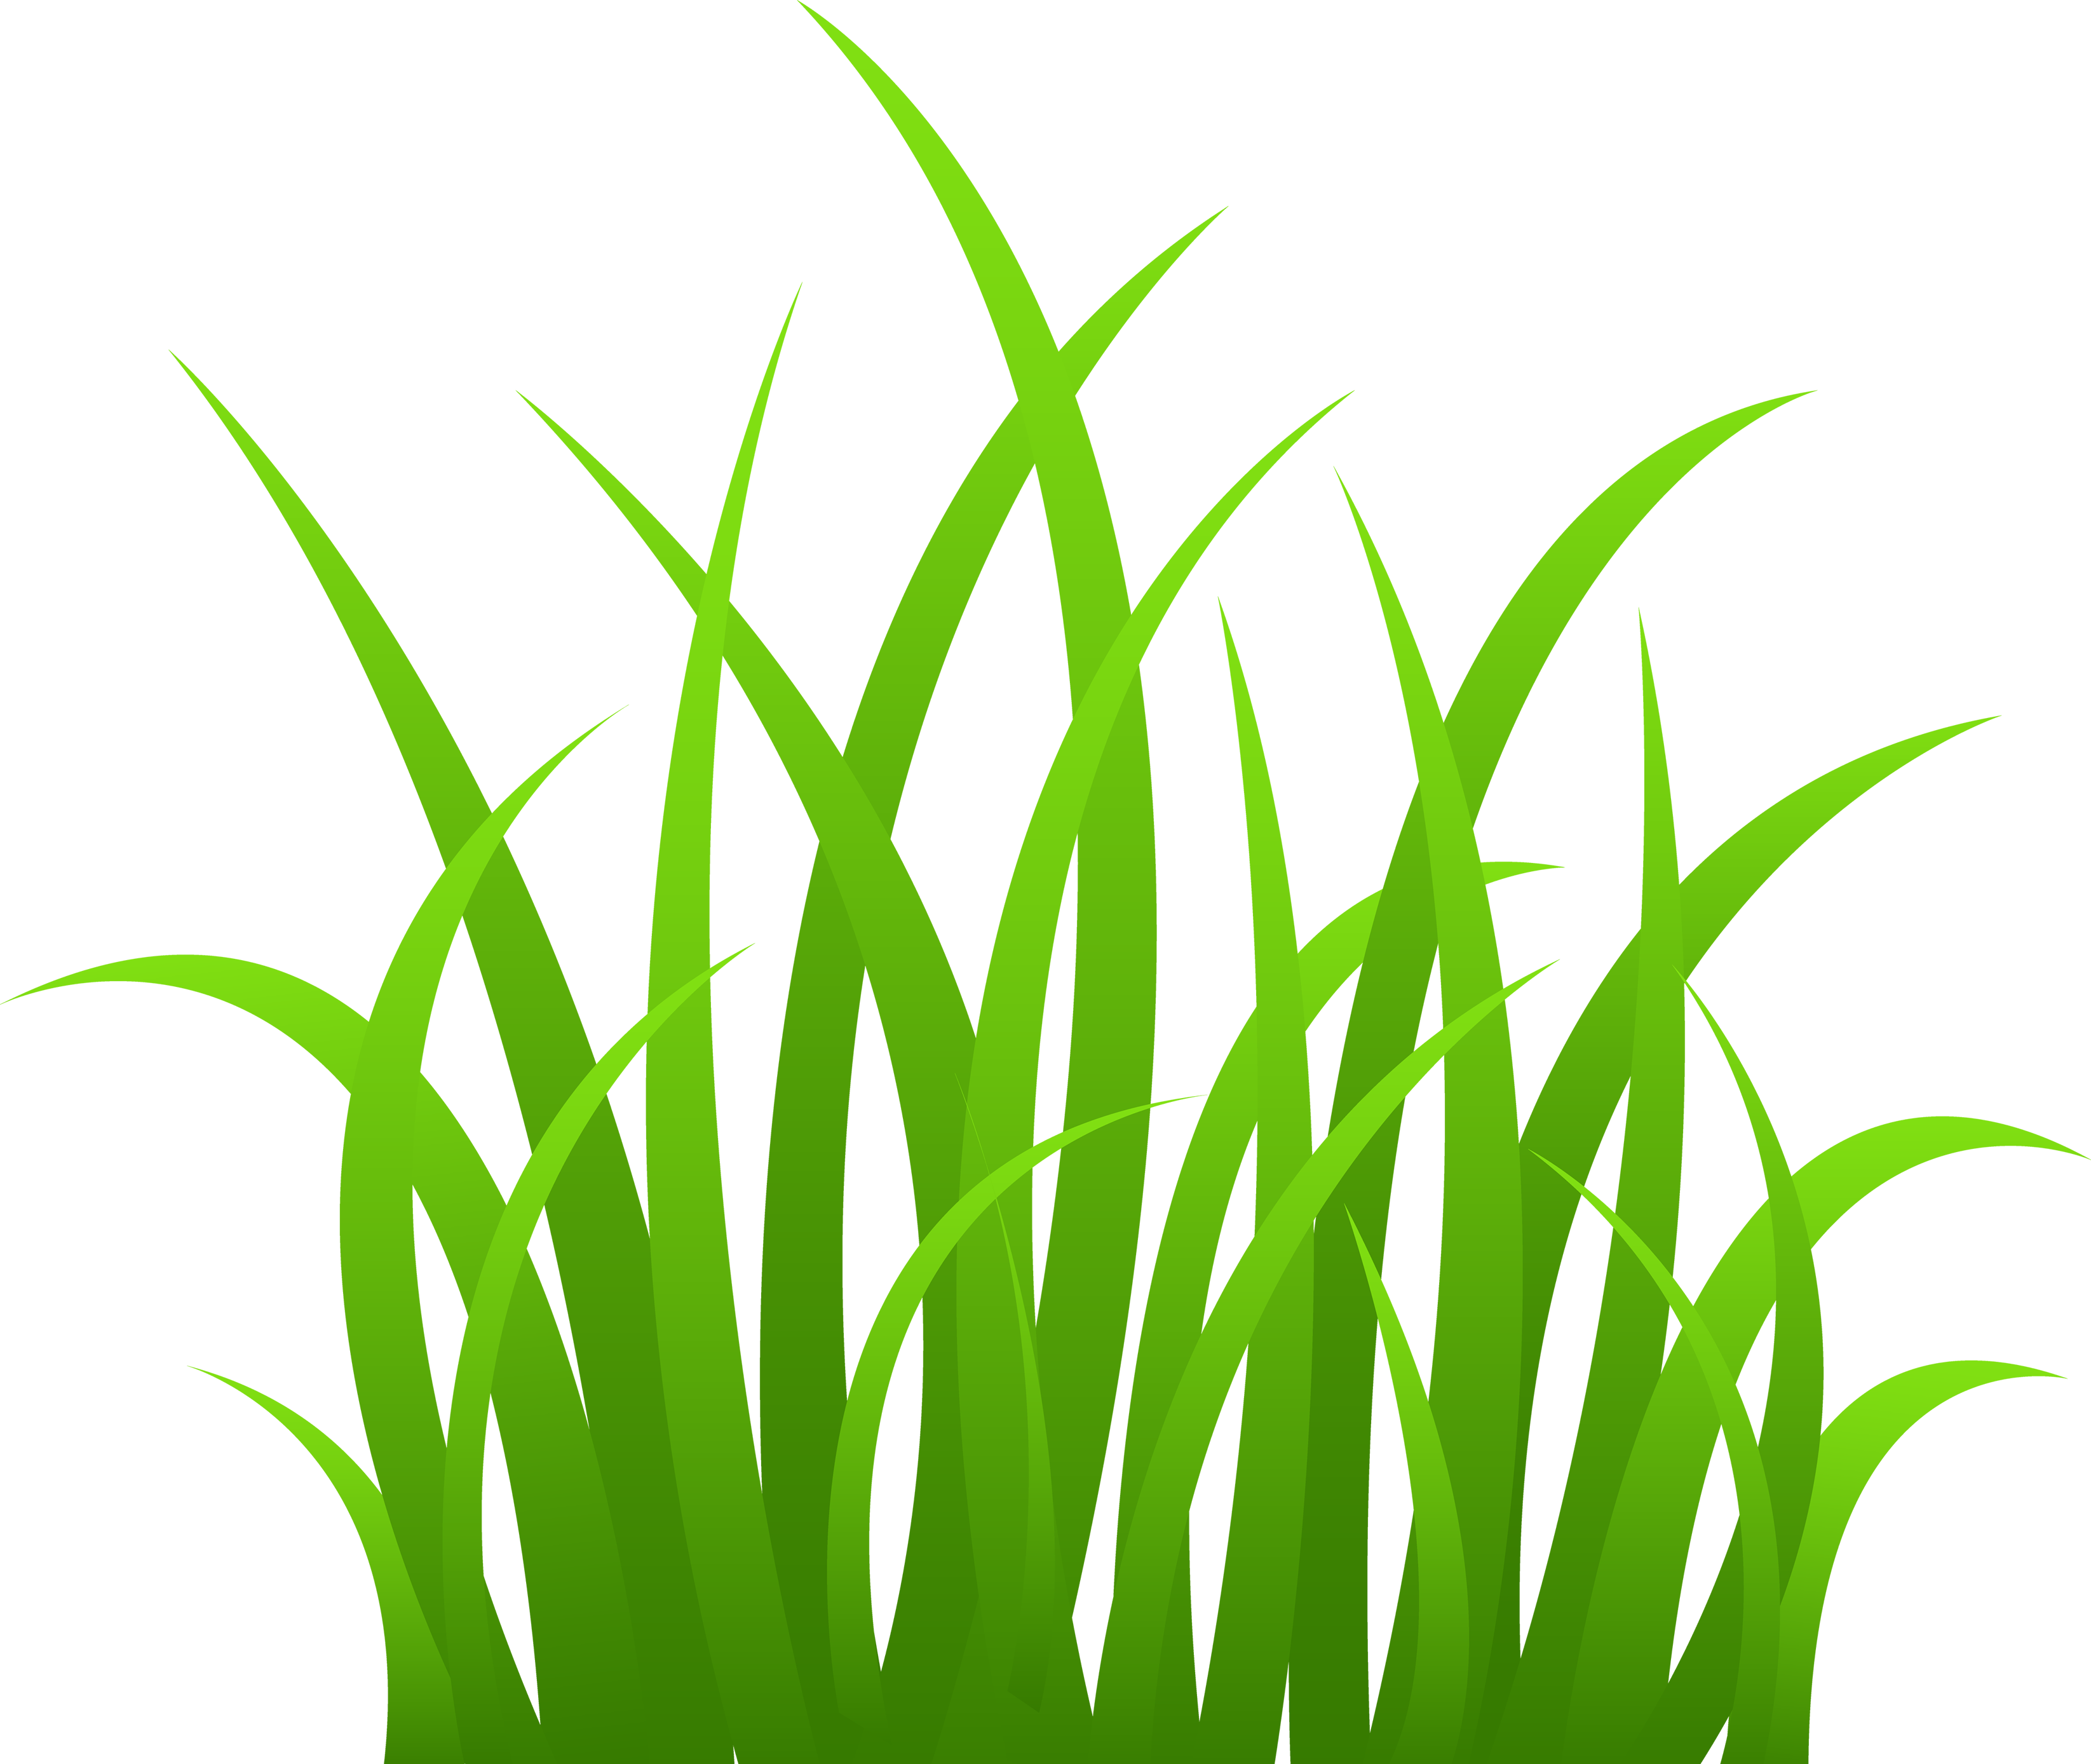 Grass clippings clipart.